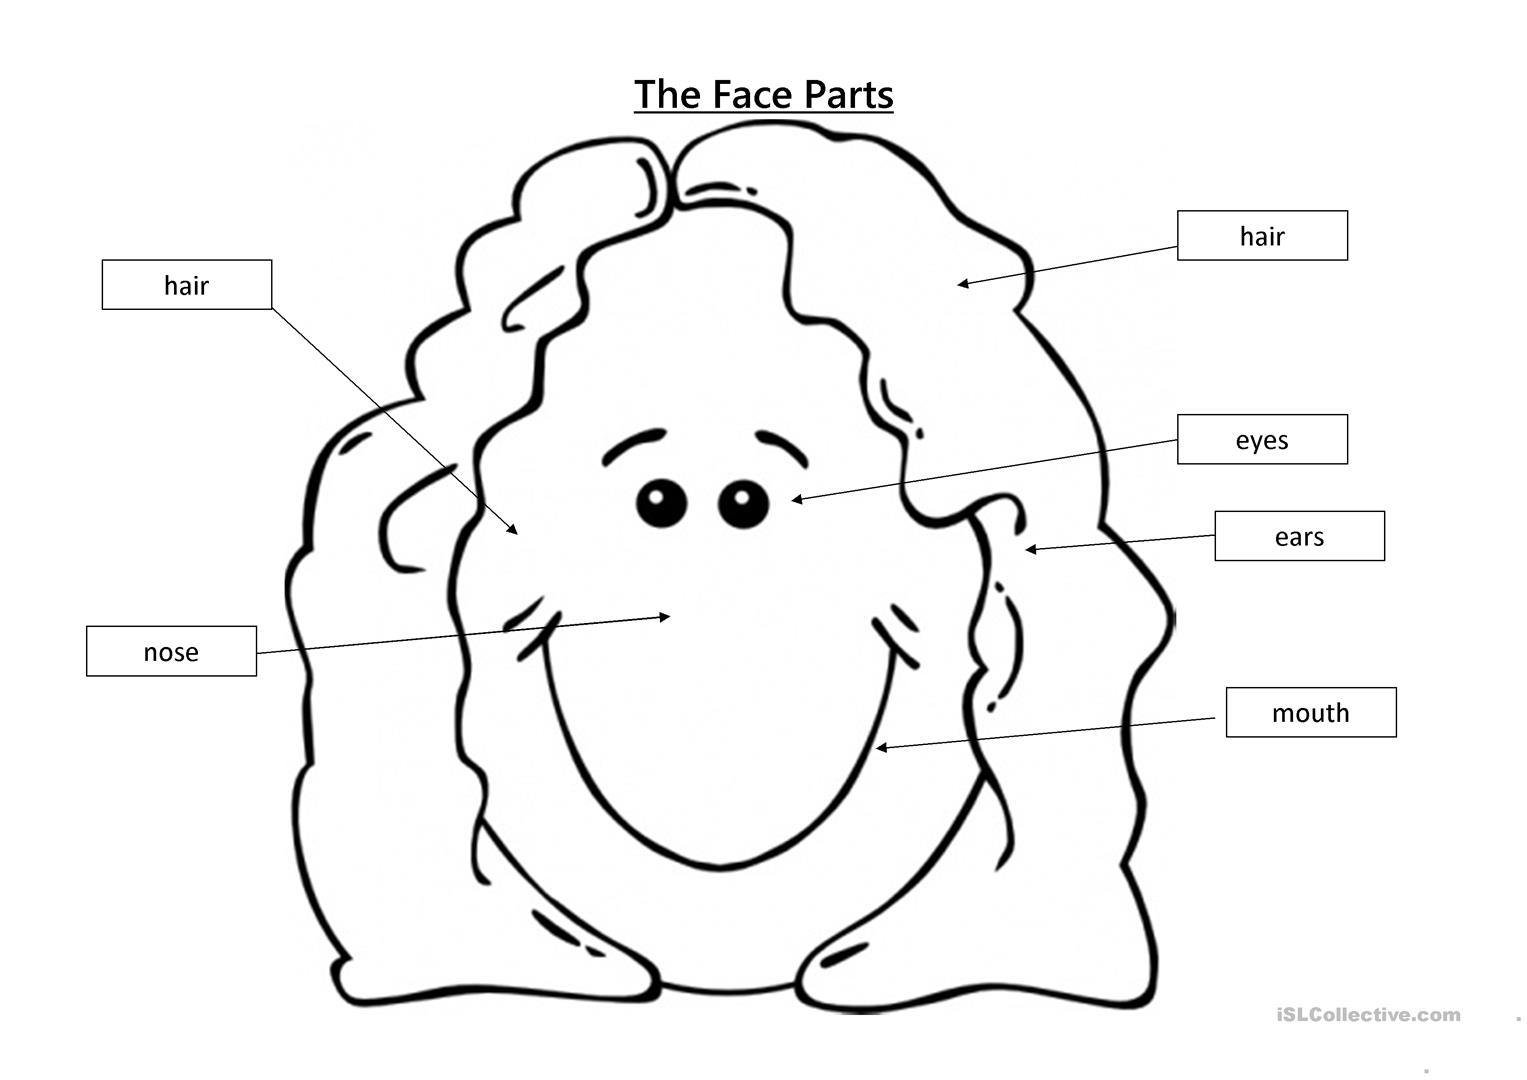 Preschool Body Parts Labeling Worksheet Printable